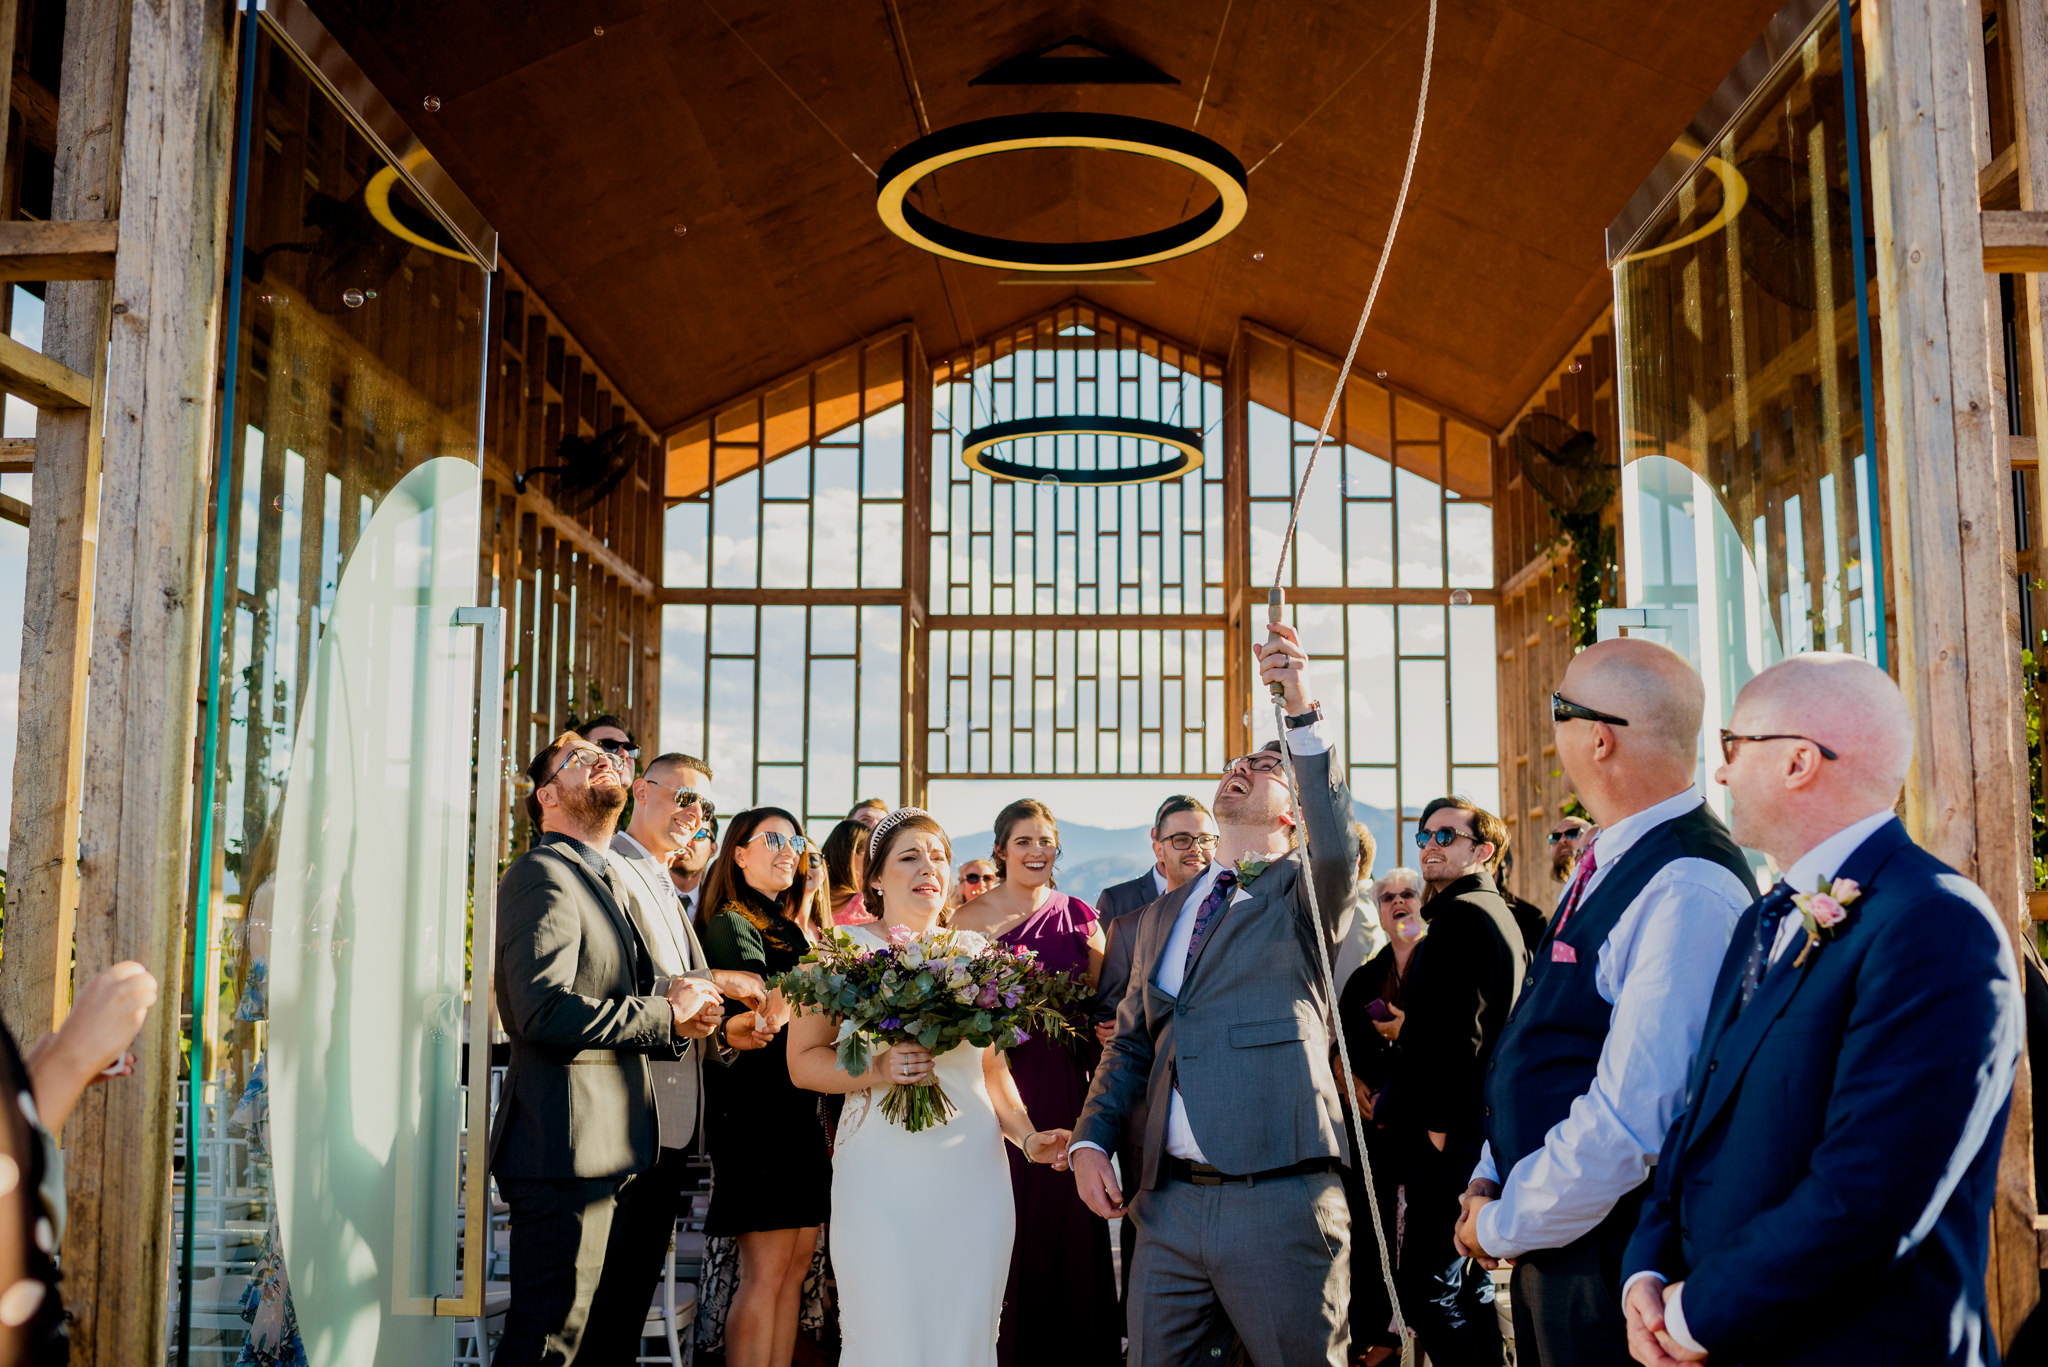 Groom swinging a bell rope at the end of the wedding cermeony